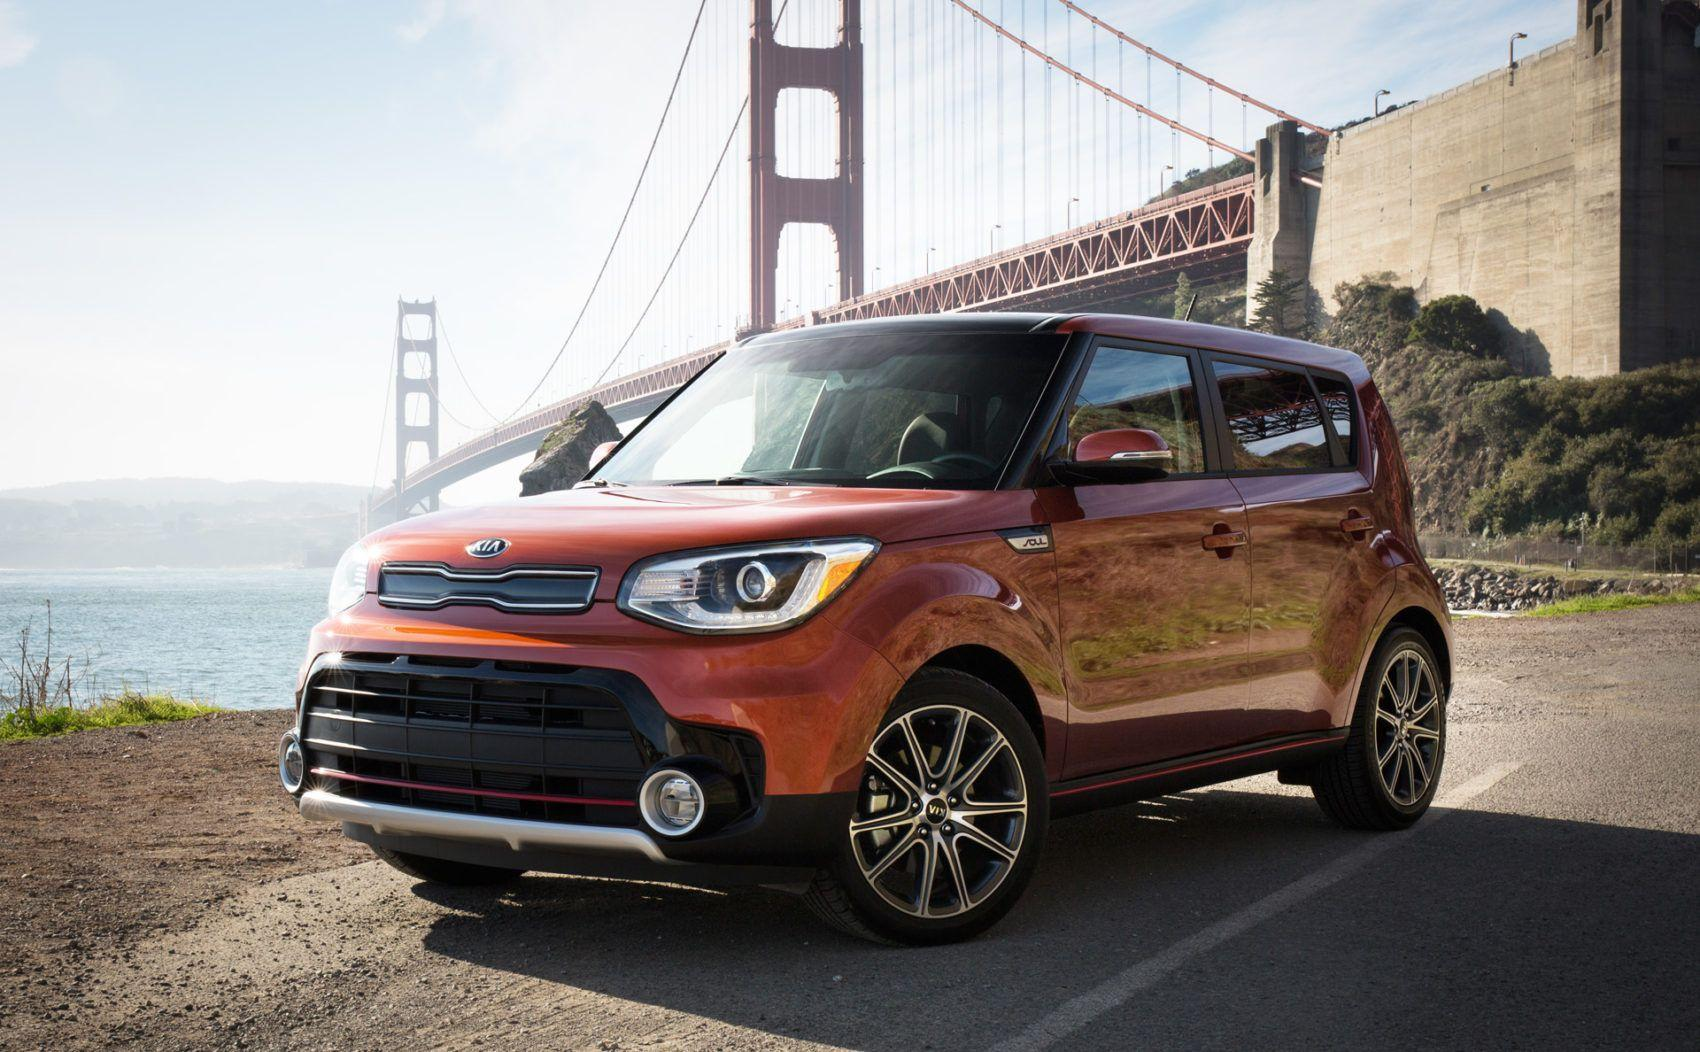 2018 Kia Soul | Top High Resolution Wallpapers | Autocar Release Preview